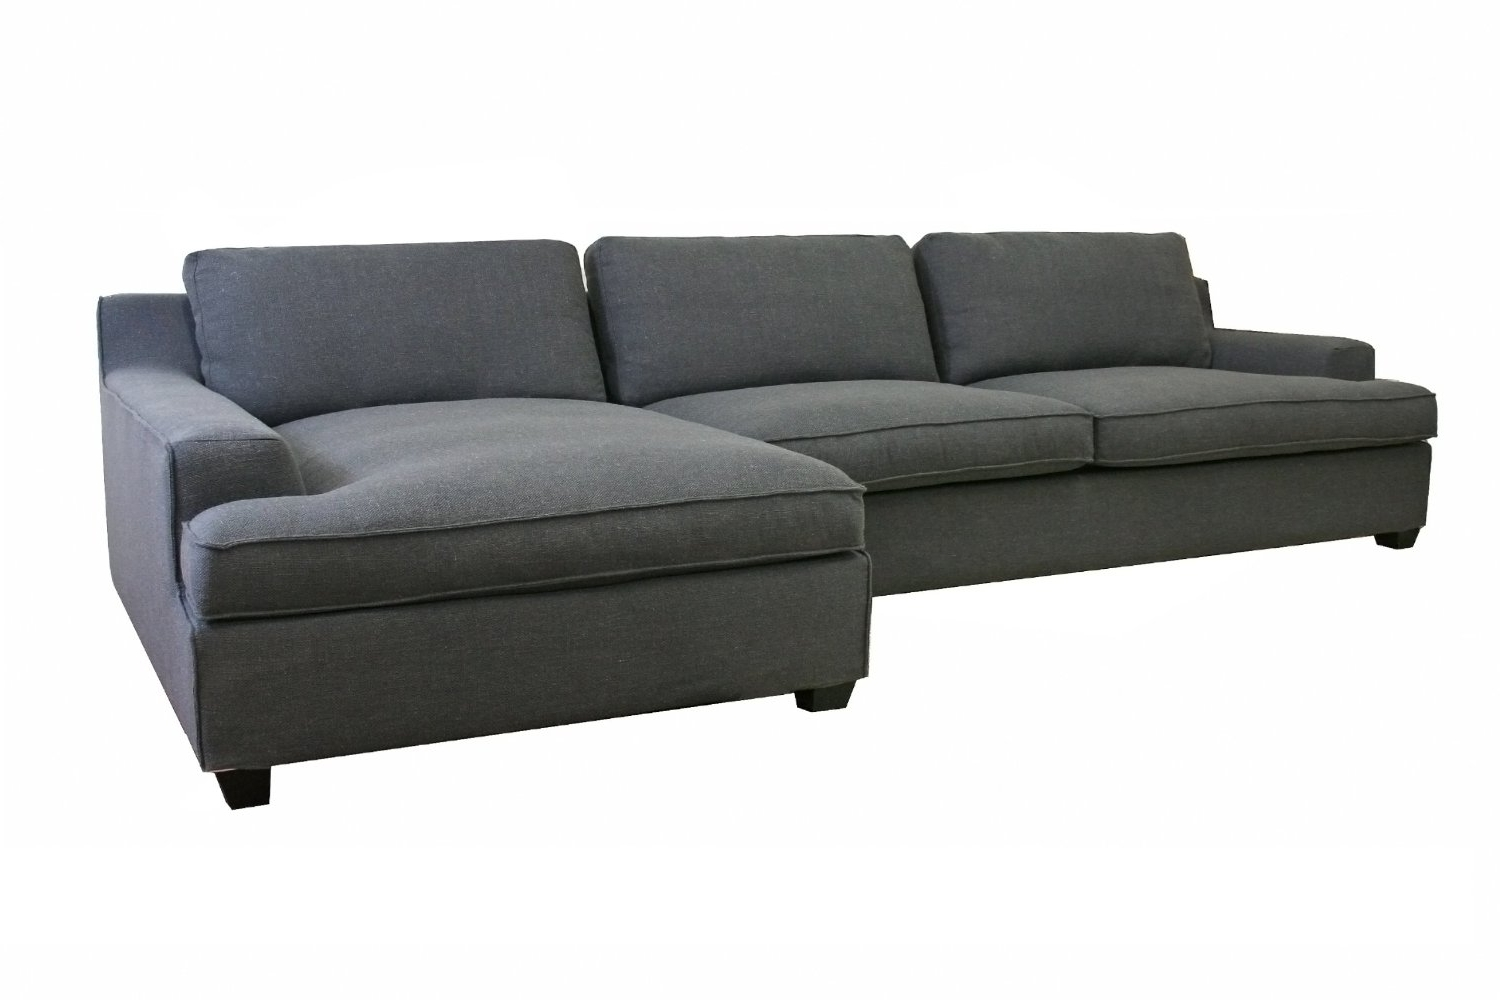 Widely Used Small Couches With Chaise With Leather Loveseat With Chaise 72 Inch Sofa Sectional Sleeper Sofa (View 15 of 15)